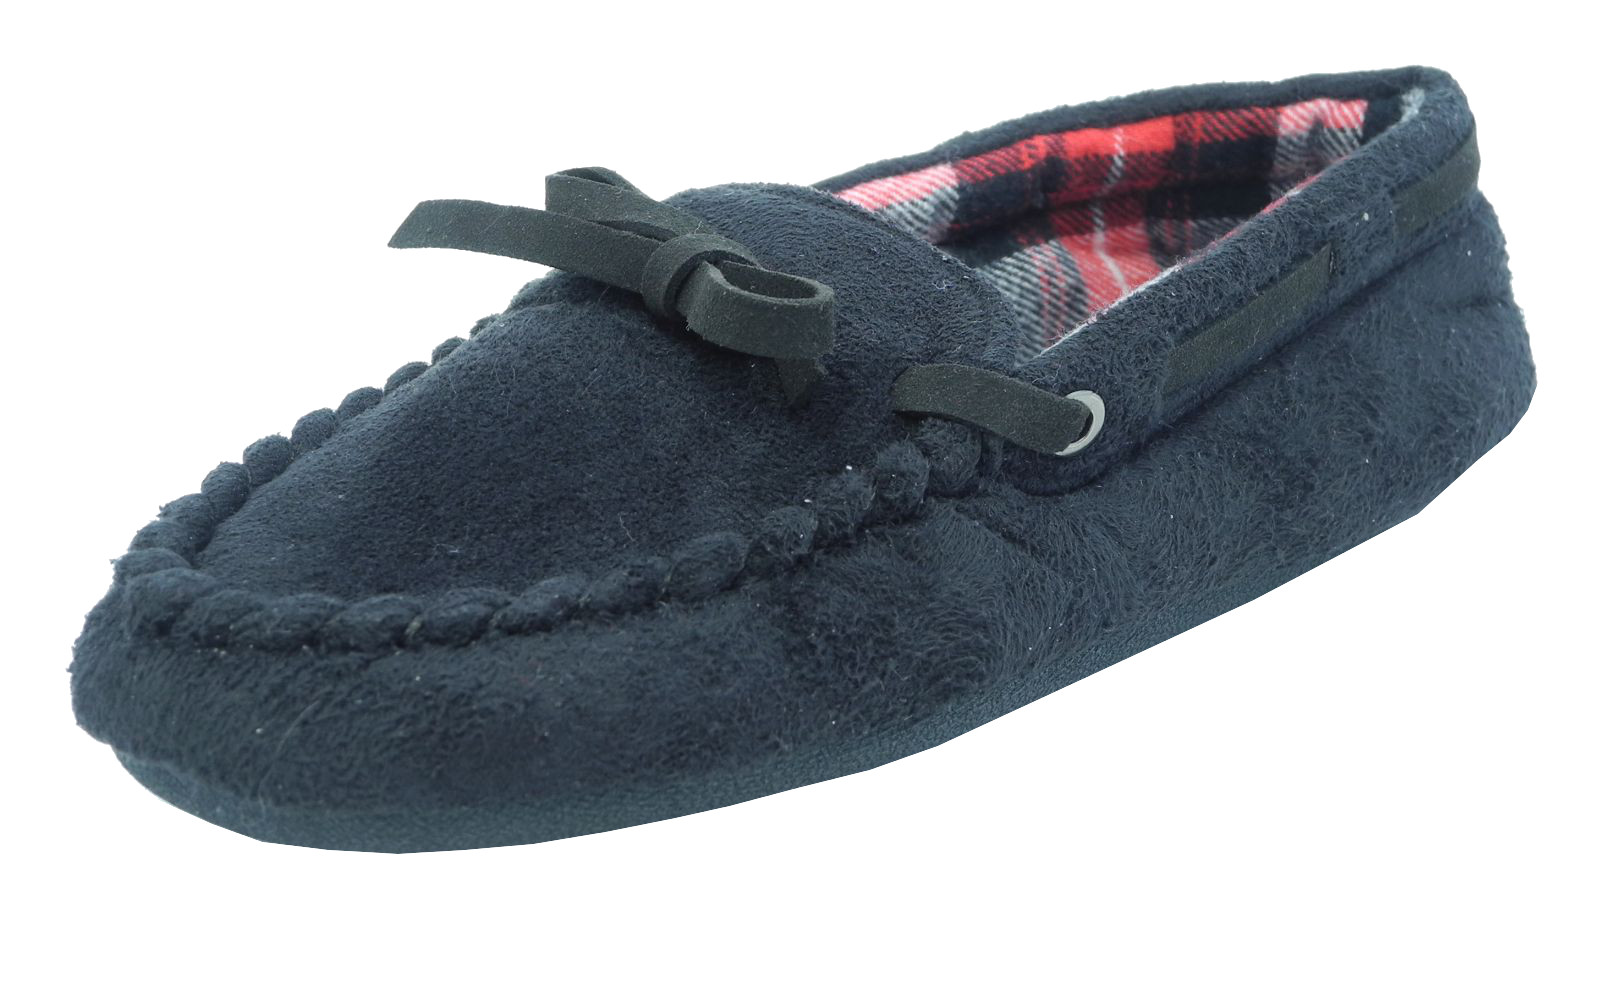 Size 5 Boys Slippers with FREE Shipping & Exchanges, and a % price guarantee. Choose from a huge selection of Size 5 Boys Slippers styles.